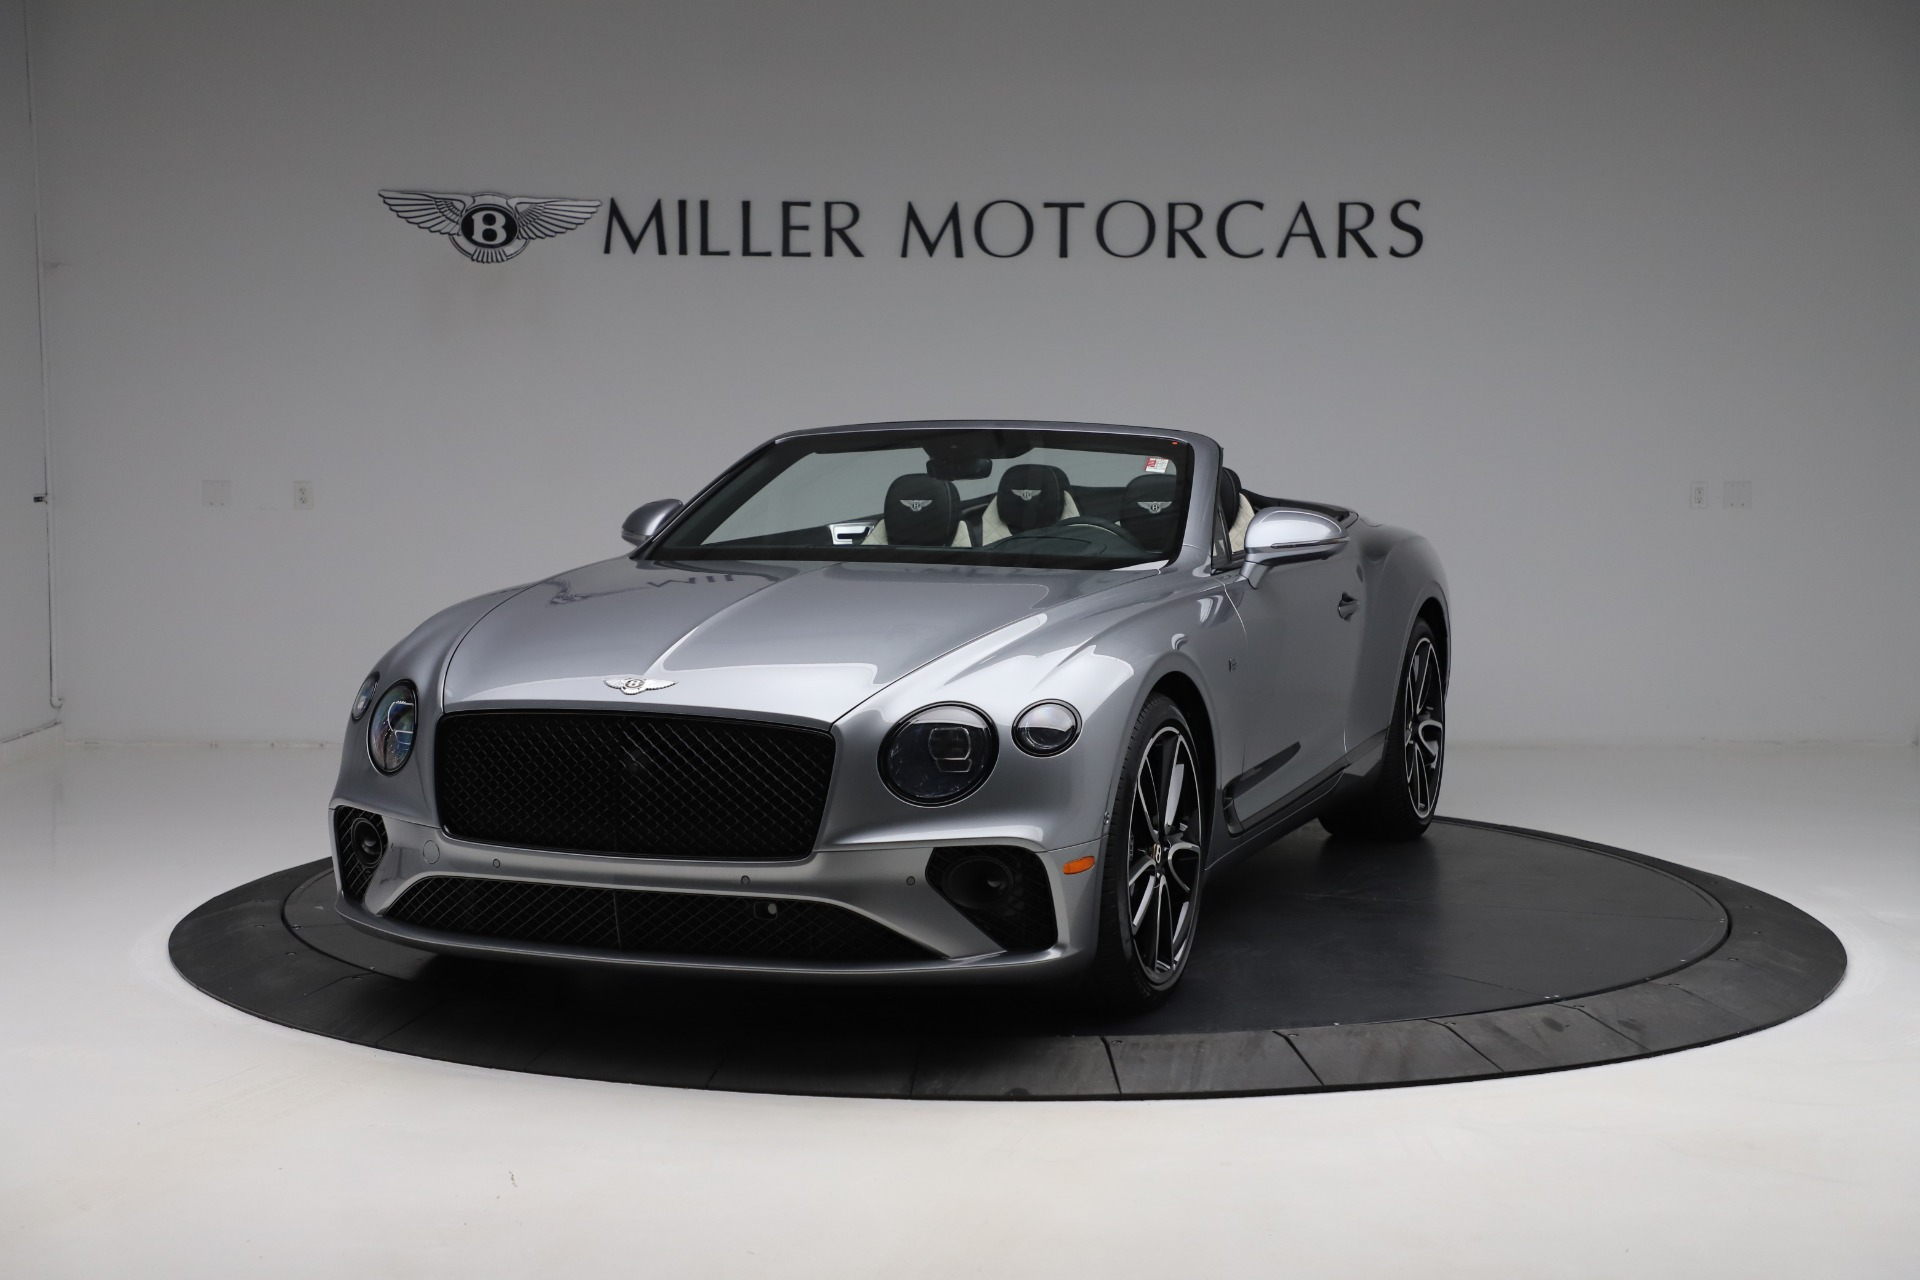 New 2020 Bentley Continental GTC W12 First Edition for sale $309,350 at Bugatti of Greenwich in Greenwich CT 06830 1